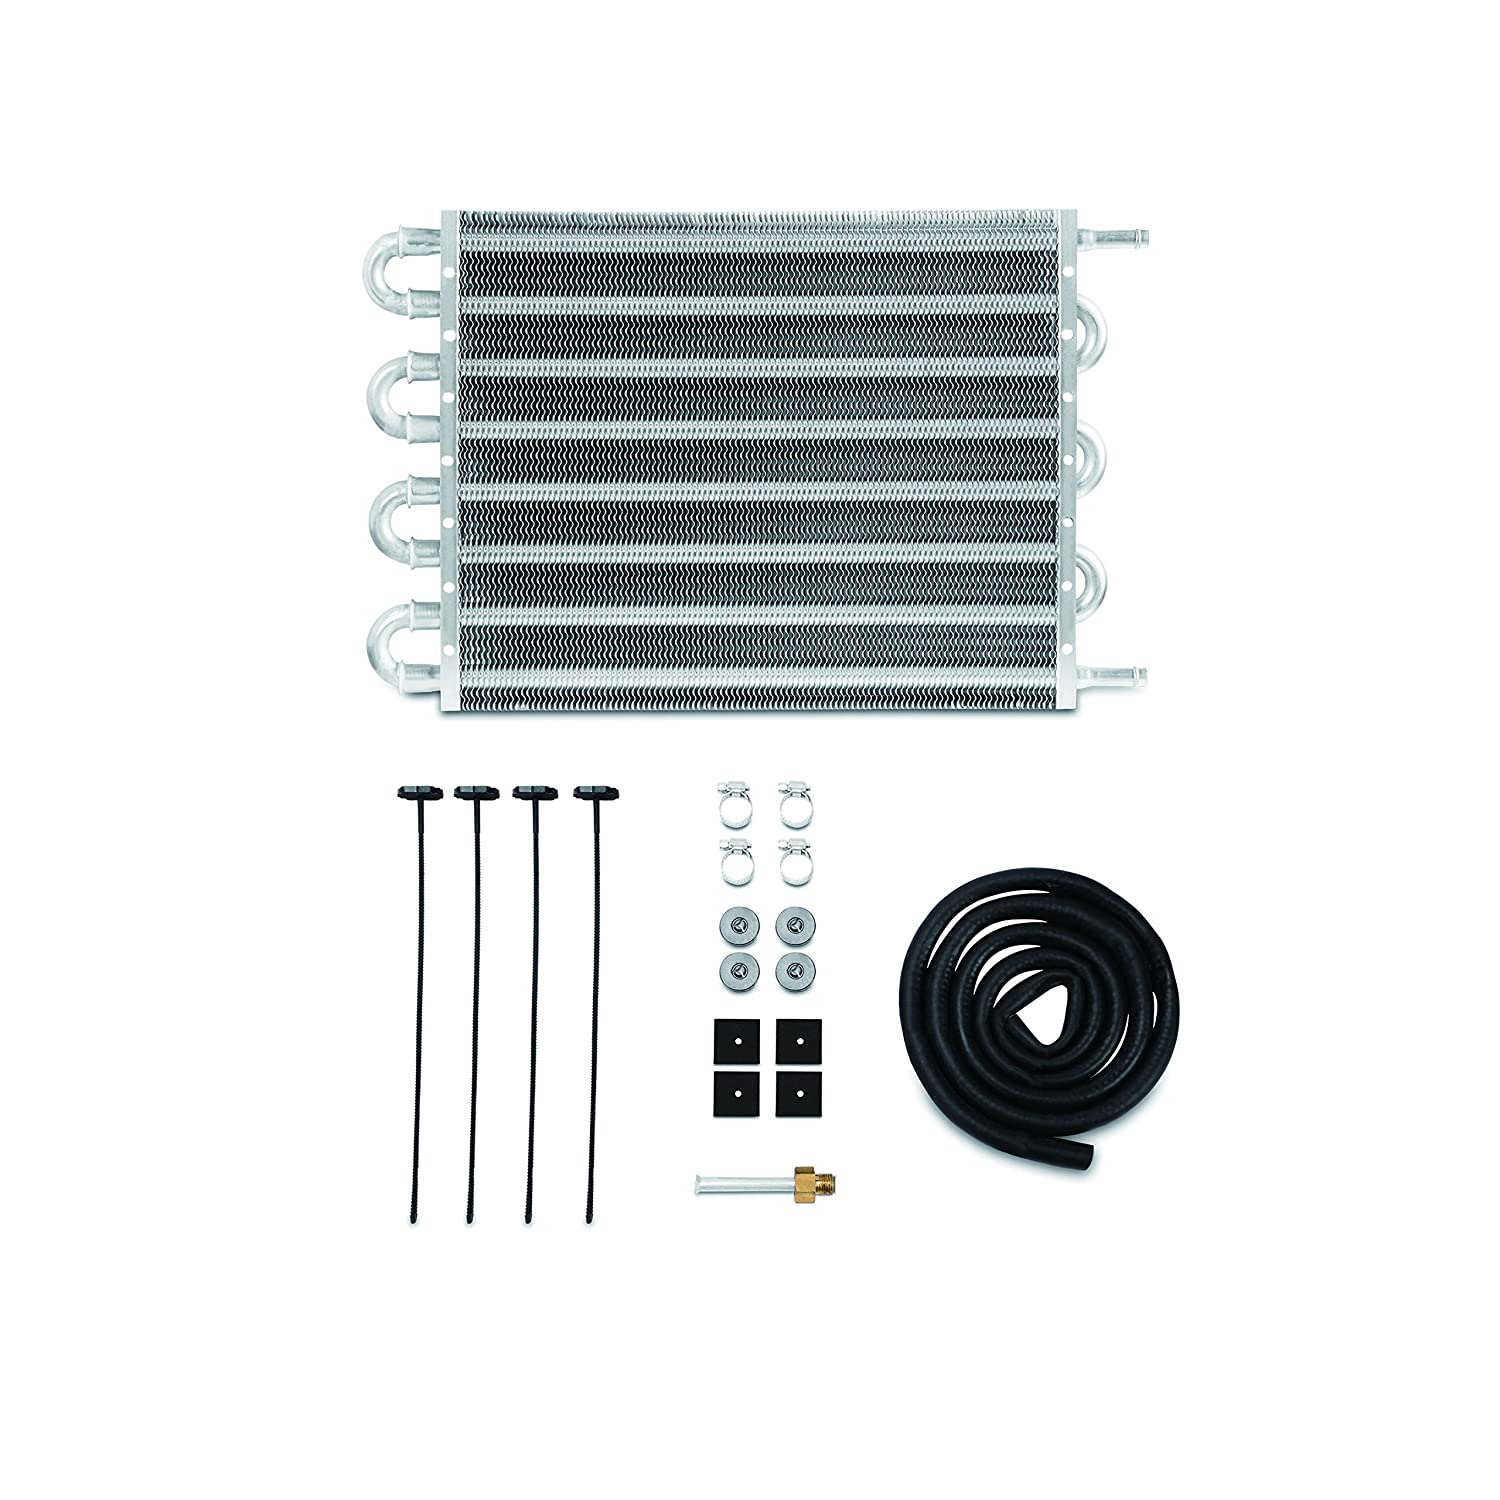 Mishimoto Silver 15 Inch x 7.5 Inch x 0.75 Inch MMTC-TF-1575 Universal Transmission Fluid Cooler, 15' x 7.5' x 0.75' 15 x 7.5 x 0.75